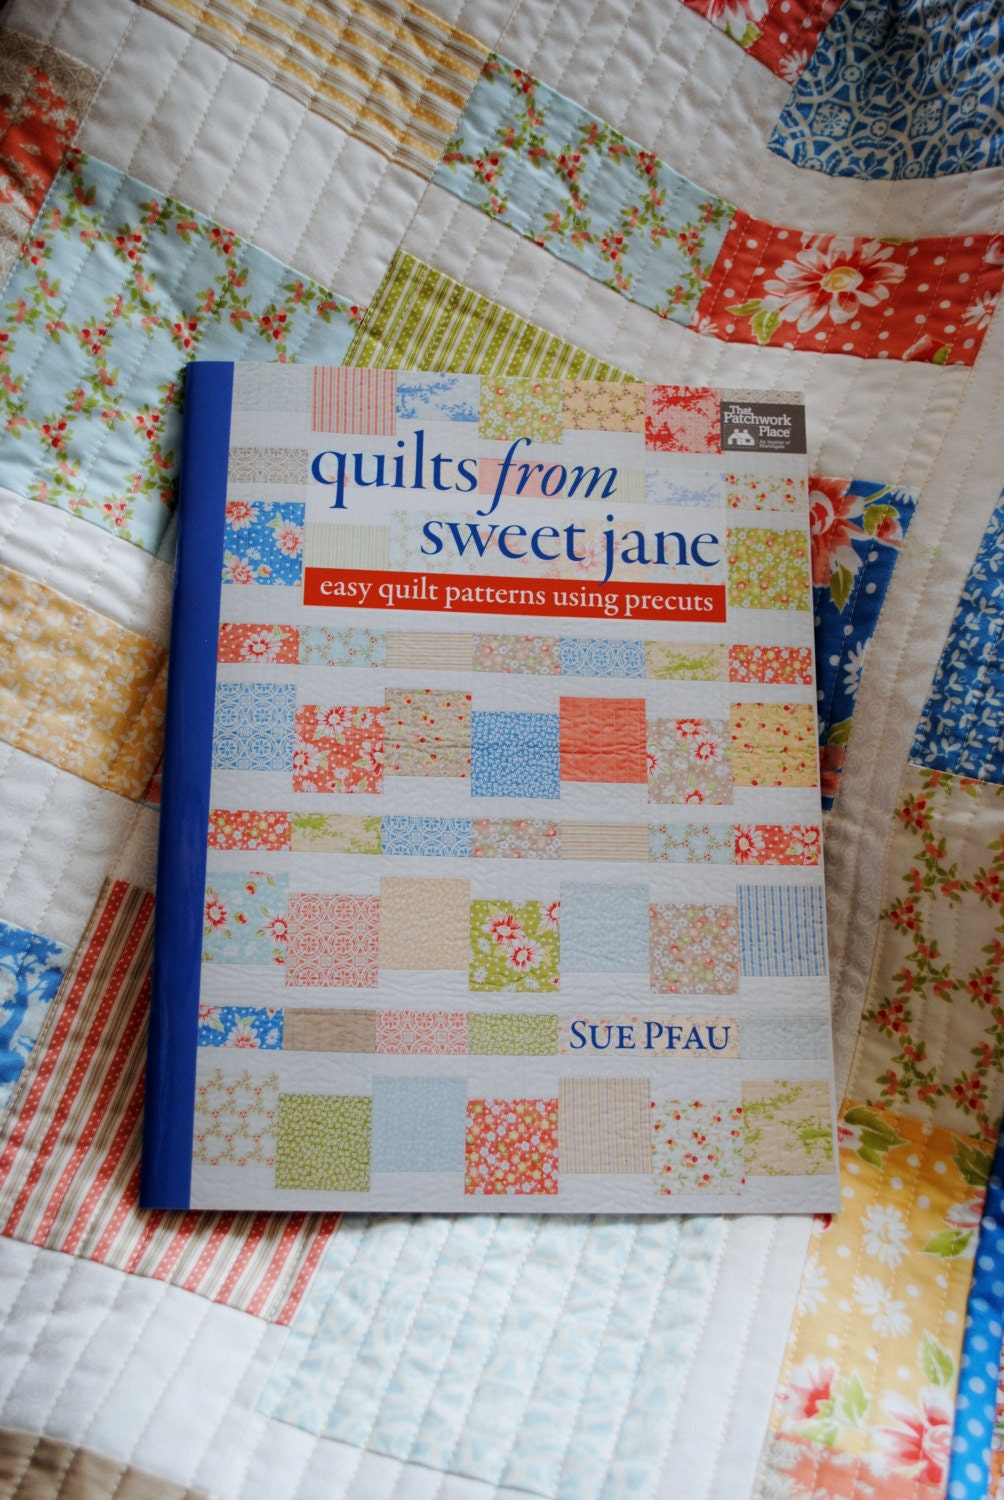 Quilt pattern book Quilts from Sweet Jane patterns for